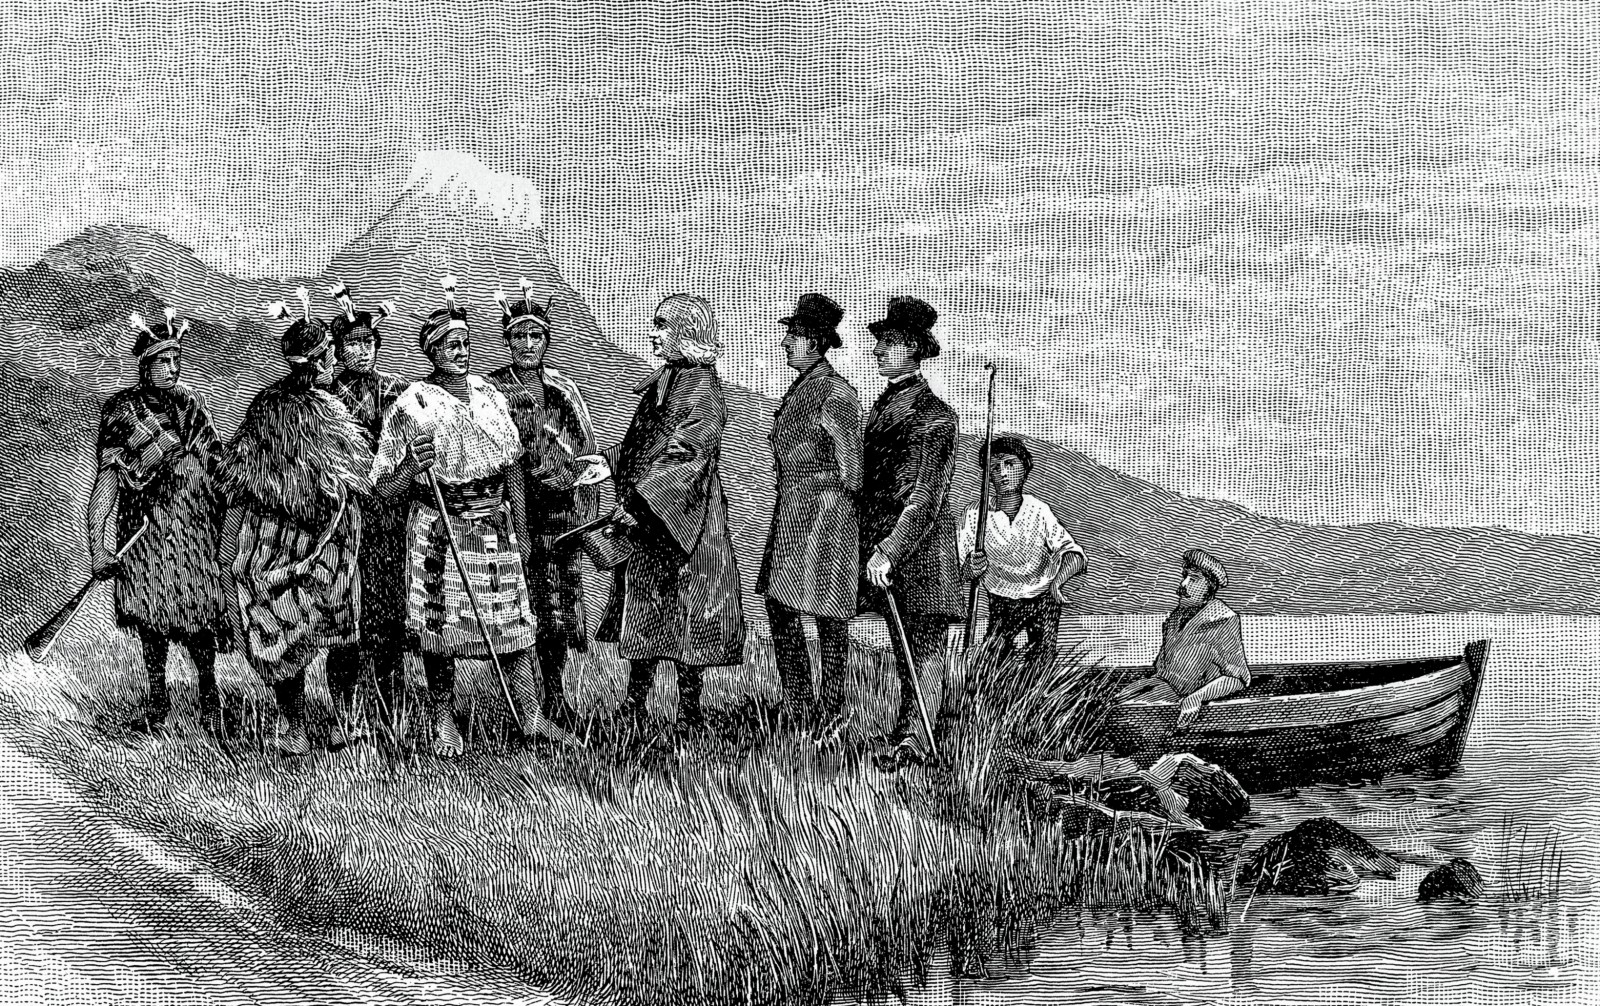 """A fanciful reconstruction of the """"landing of Samuel Marsden at Bay of Islands, December 19, 1814."""" Since the party didn't reach the Bay of Islands until the 22nd, this is more likely a depiction of the arrival in Whangaroa, which also fits better with the distinctive hill in the background. Marsden's hatted companions were likely Thomas Kendall and William Hall, would-be settlers to assist with the establishment of a mission, and who had already visited NZ earlier in the year."""